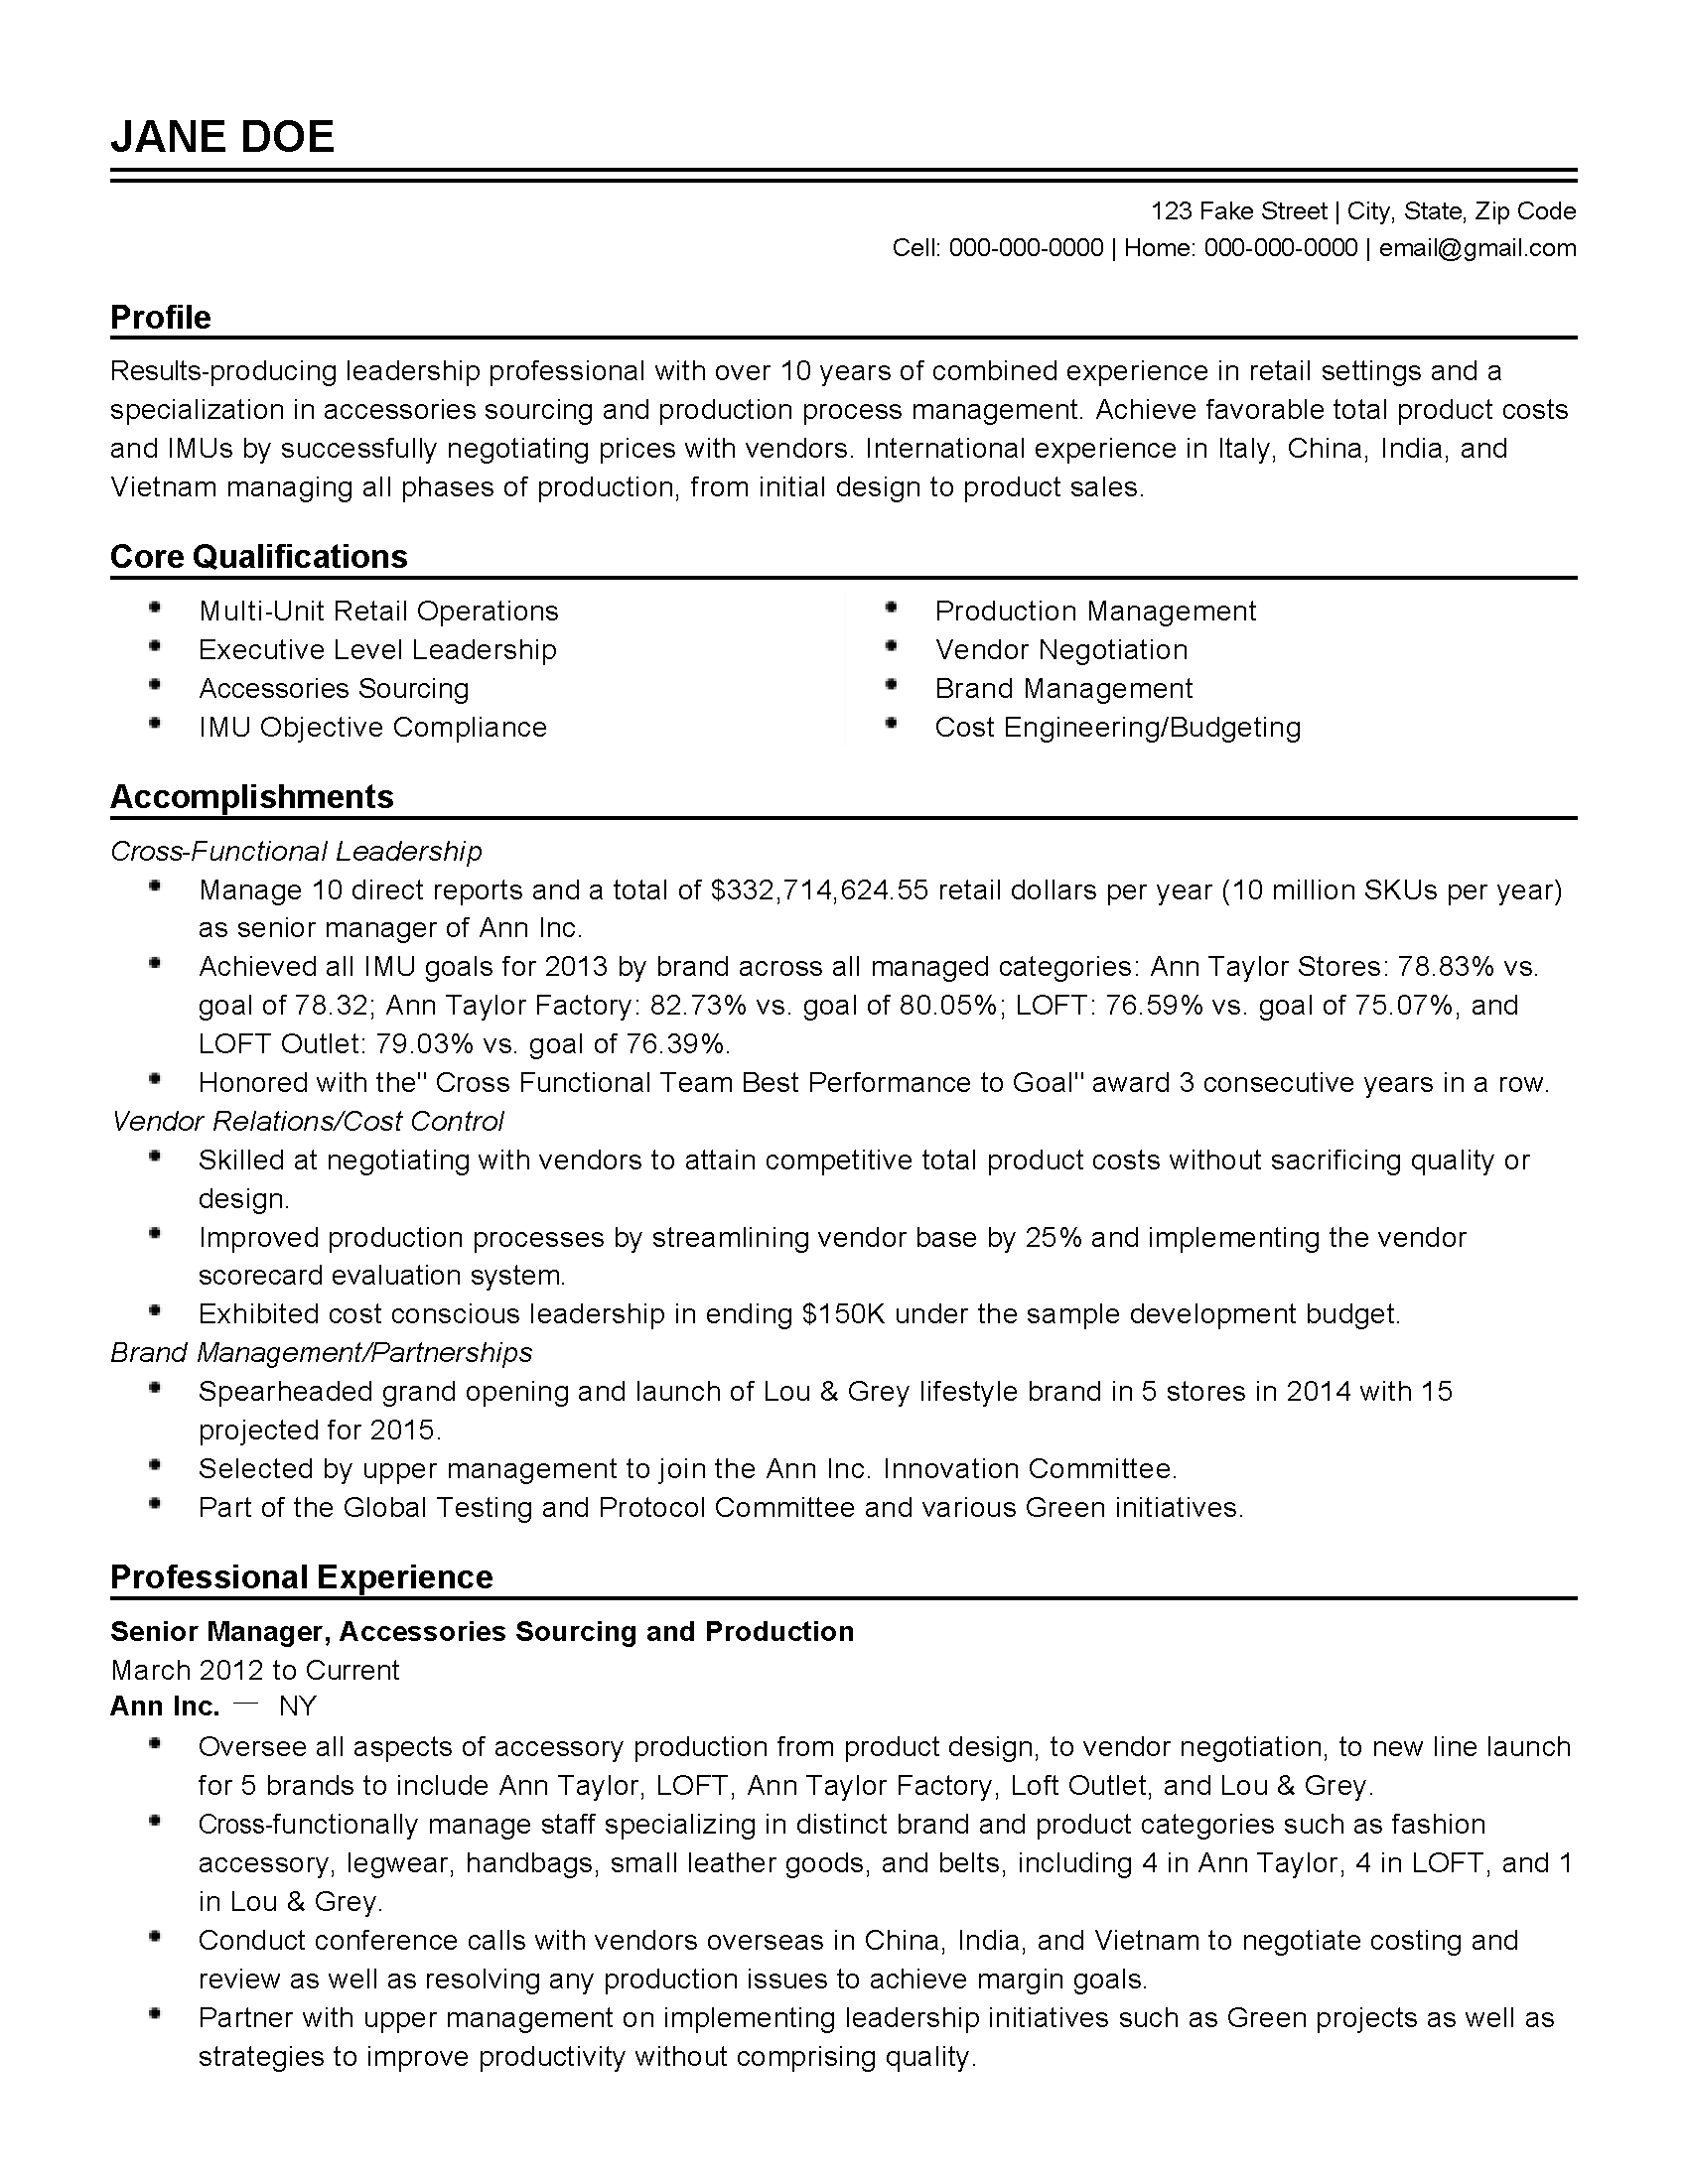 Resume Examples Me Nbspthis Website Is For Sale Nbspresume Examples Resources And Information Resume Examples Physician Assistant Jobs Executive Resume